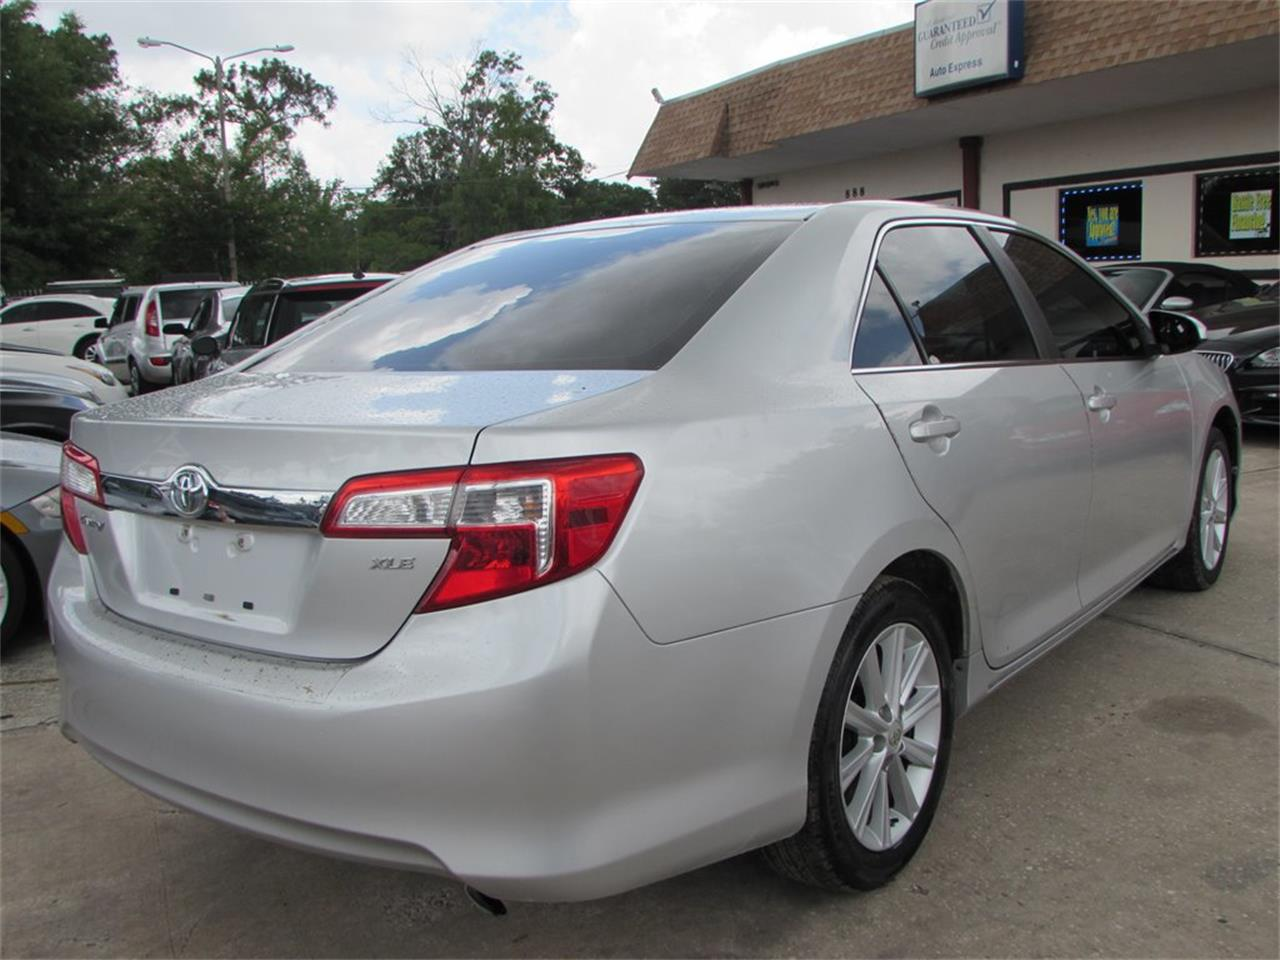 Large Picture of 2012 Toyota Camry - $9,500.00 - QBF0